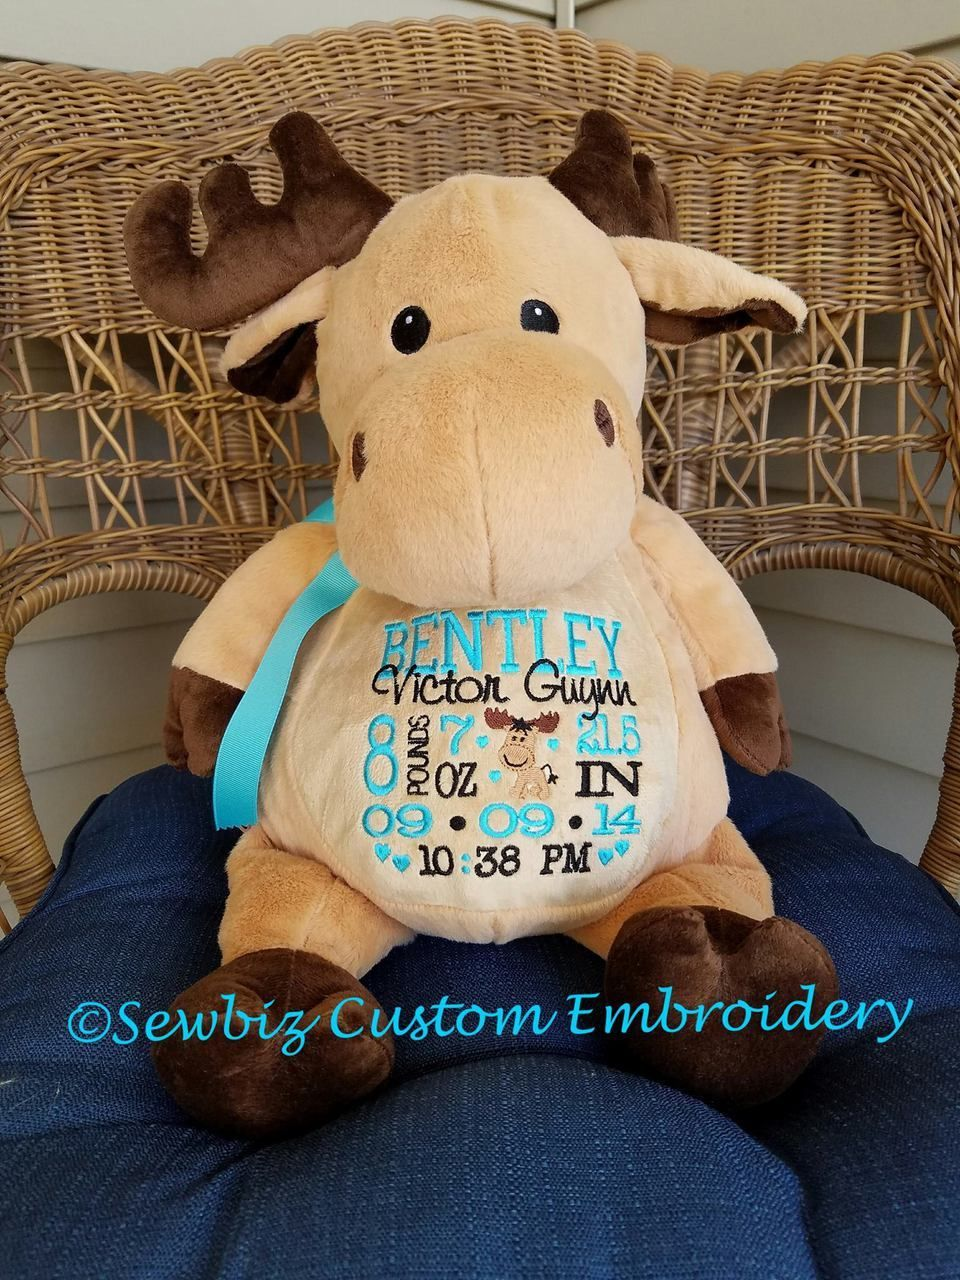 Predownload: Sewbiz Custom Embroidery Personalized Stuffed Moose Stuffed Animal From Embroider Budd Personalized Stuffed Animals Baby Gifts Baby First Christmas Ornament [ 1280 x 960 Pixel ]